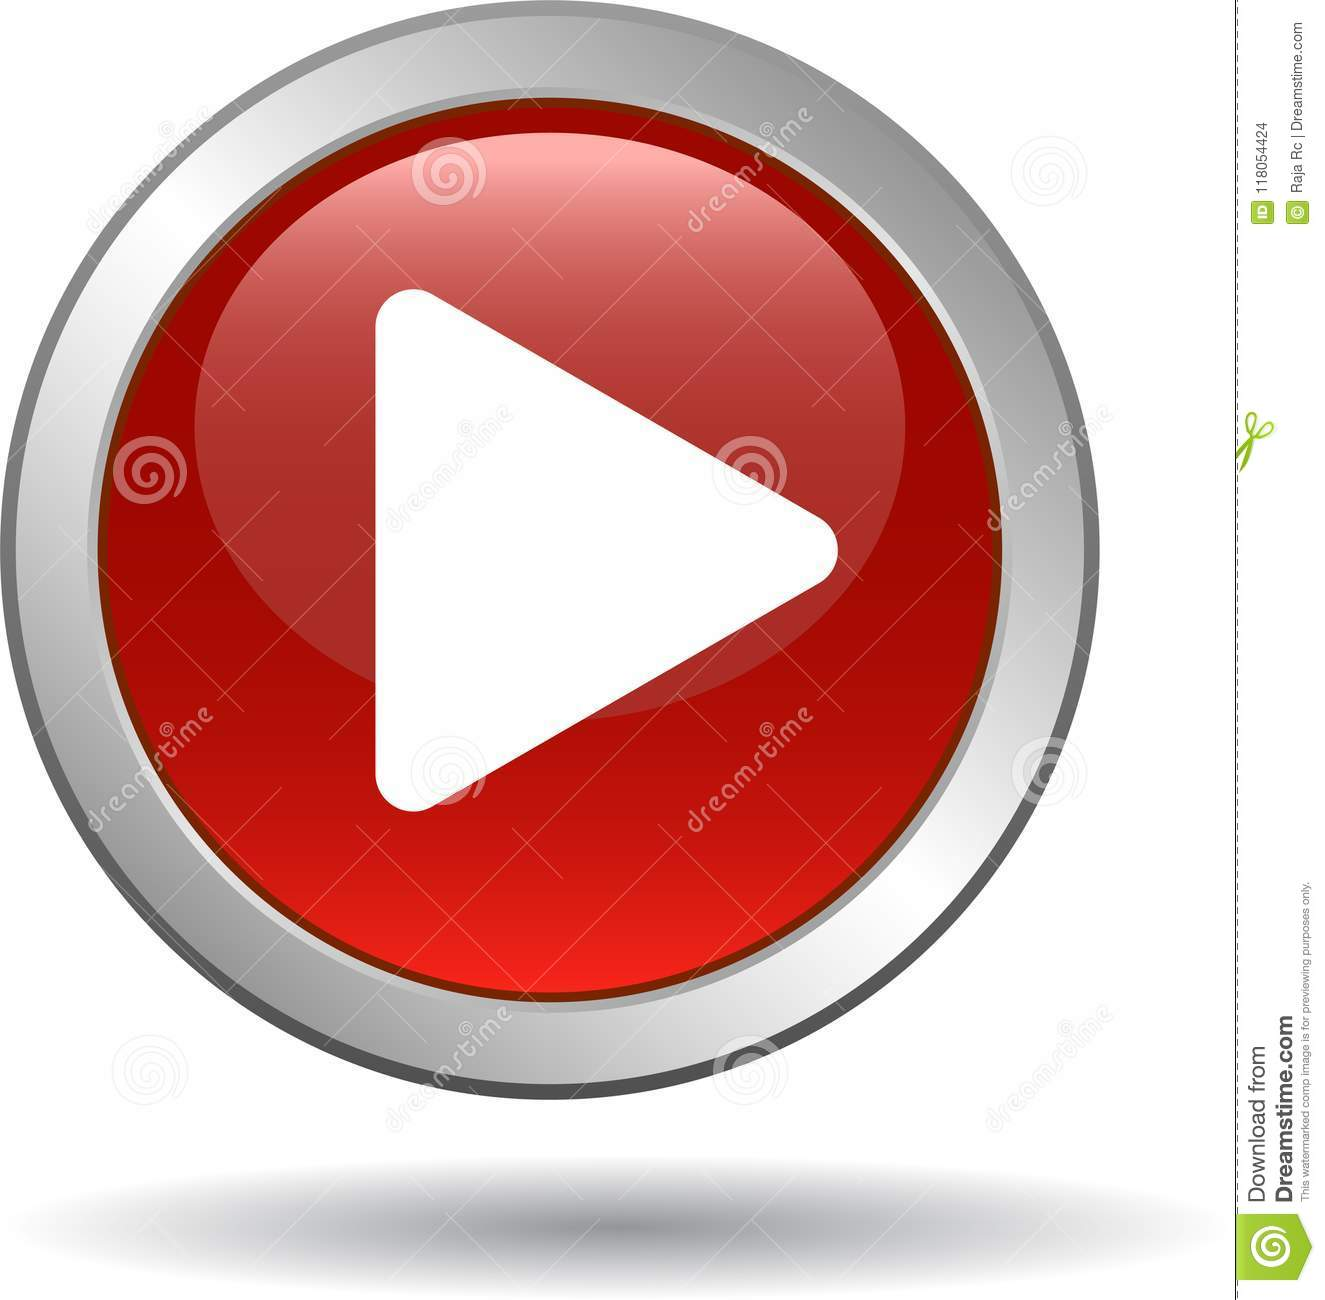 Play Button Web Audio Icon Red Stock Vector - Illustration of